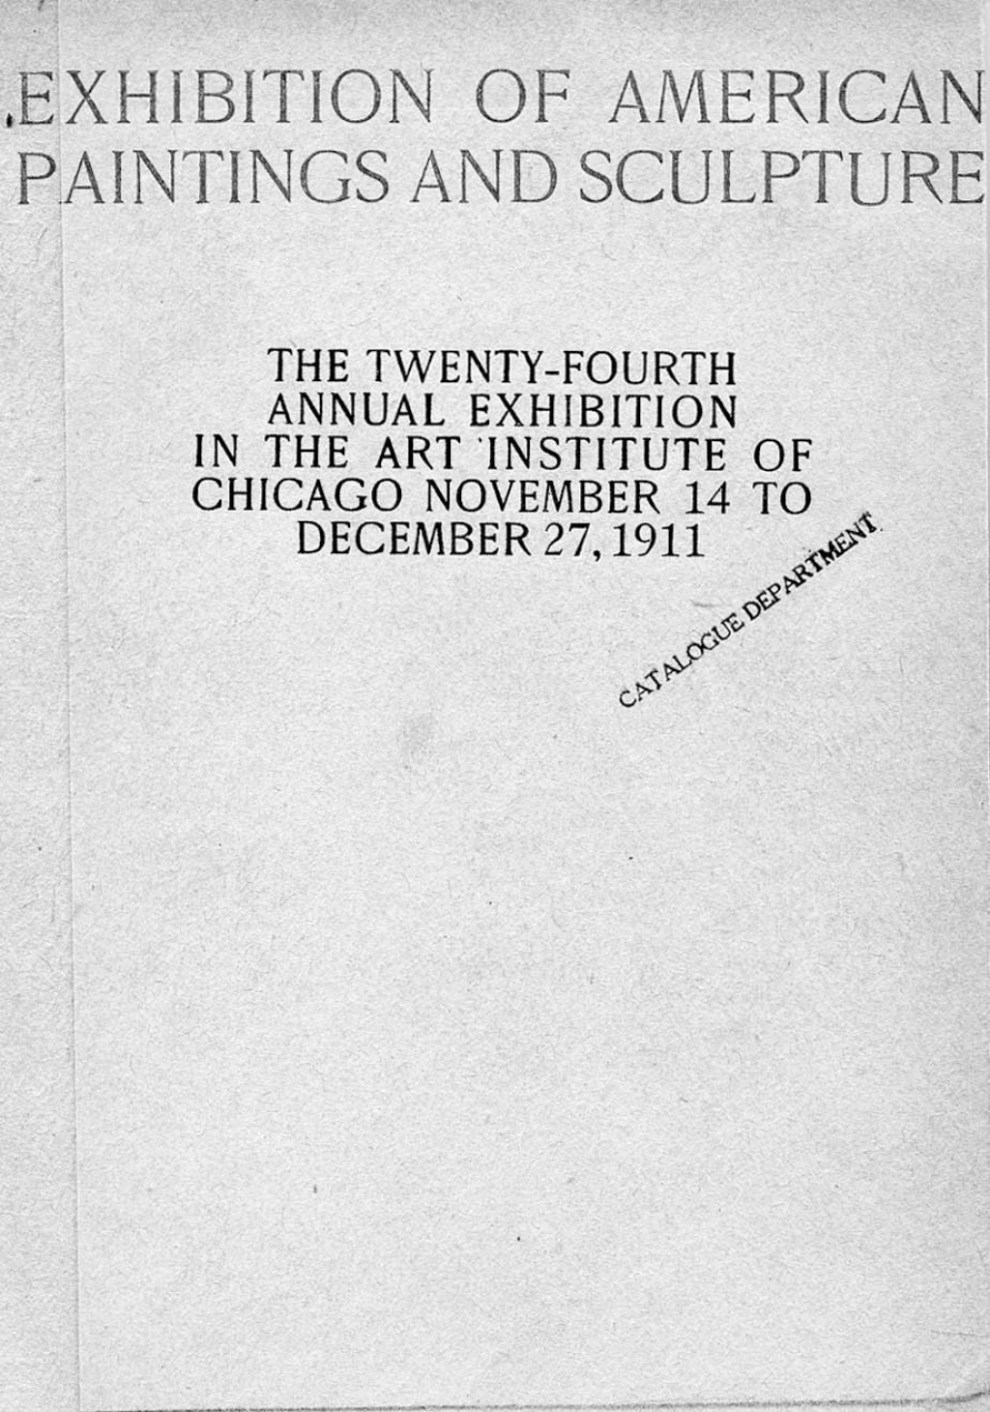 """1911 The Art Institute of Chicago, Chicago, IL, """"The Twenty-Fourth Annual Exhibition of American Paintings and Sculpture"""", November 14 - December 27"""